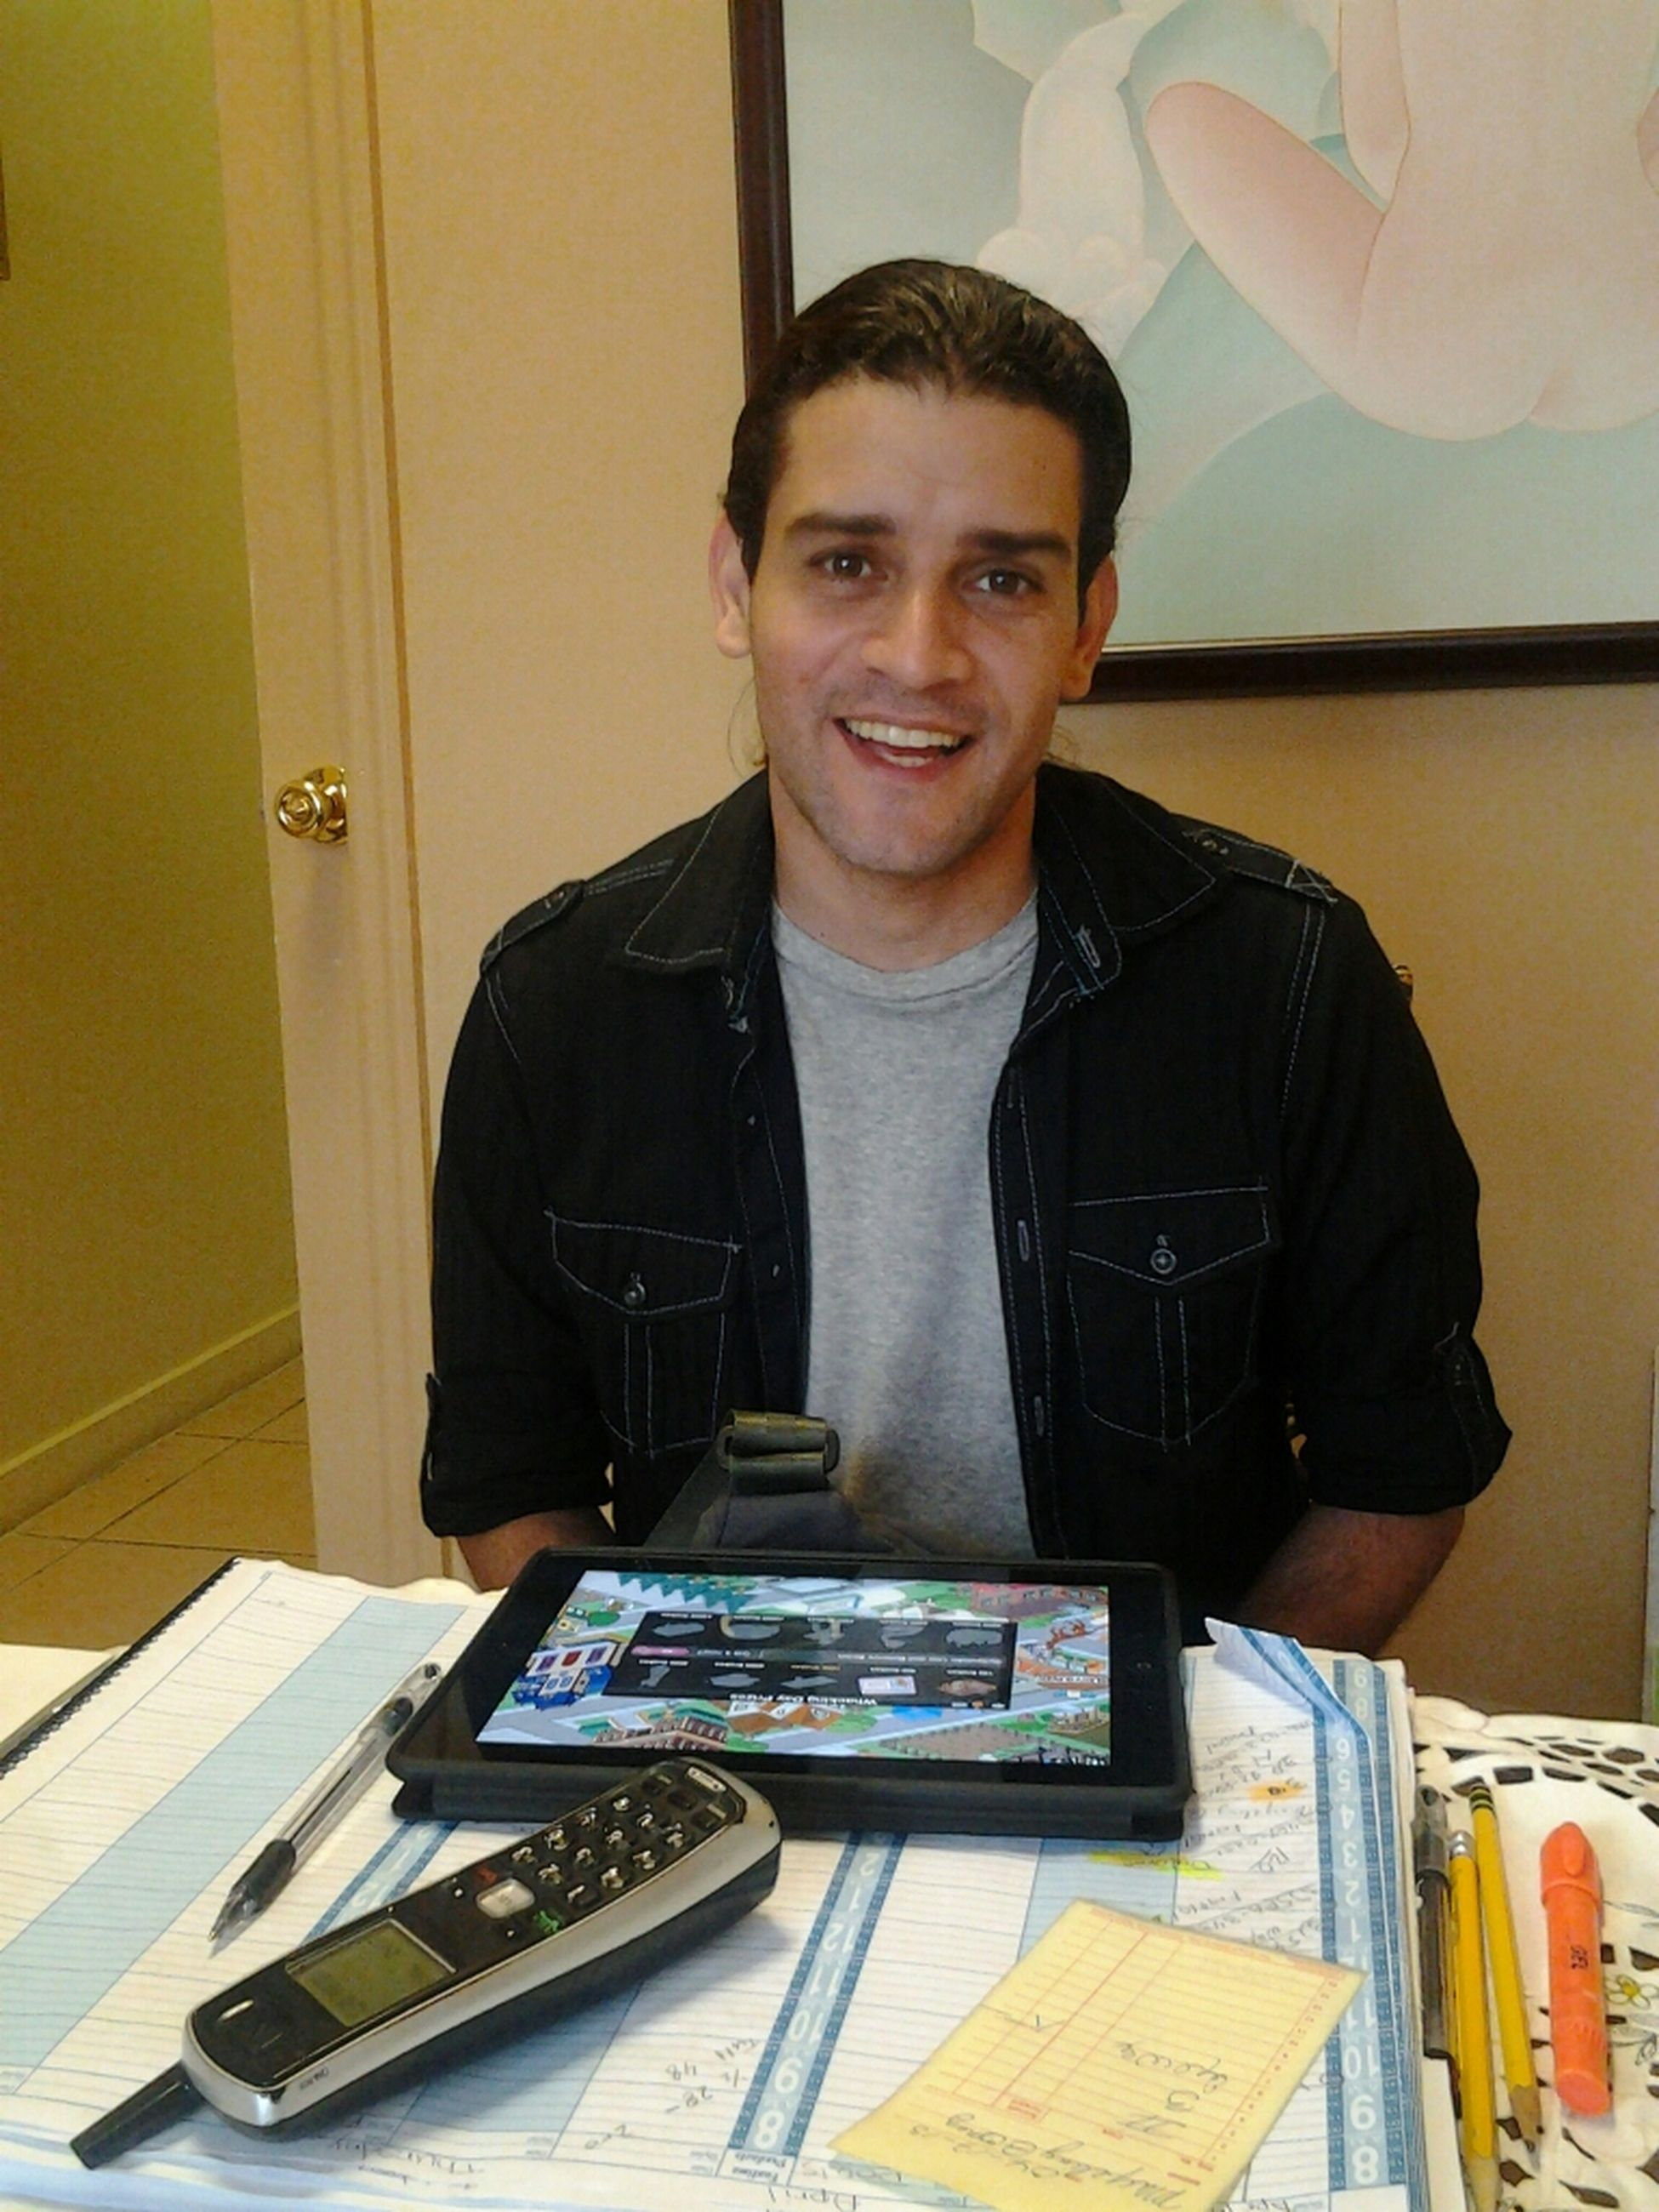 indoors, casual clothing, lifestyles, young adult, person, front view, looking at camera, young men, portrait, leisure activity, sitting, standing, holding, three quarter length, technology, waist up, table, smiling